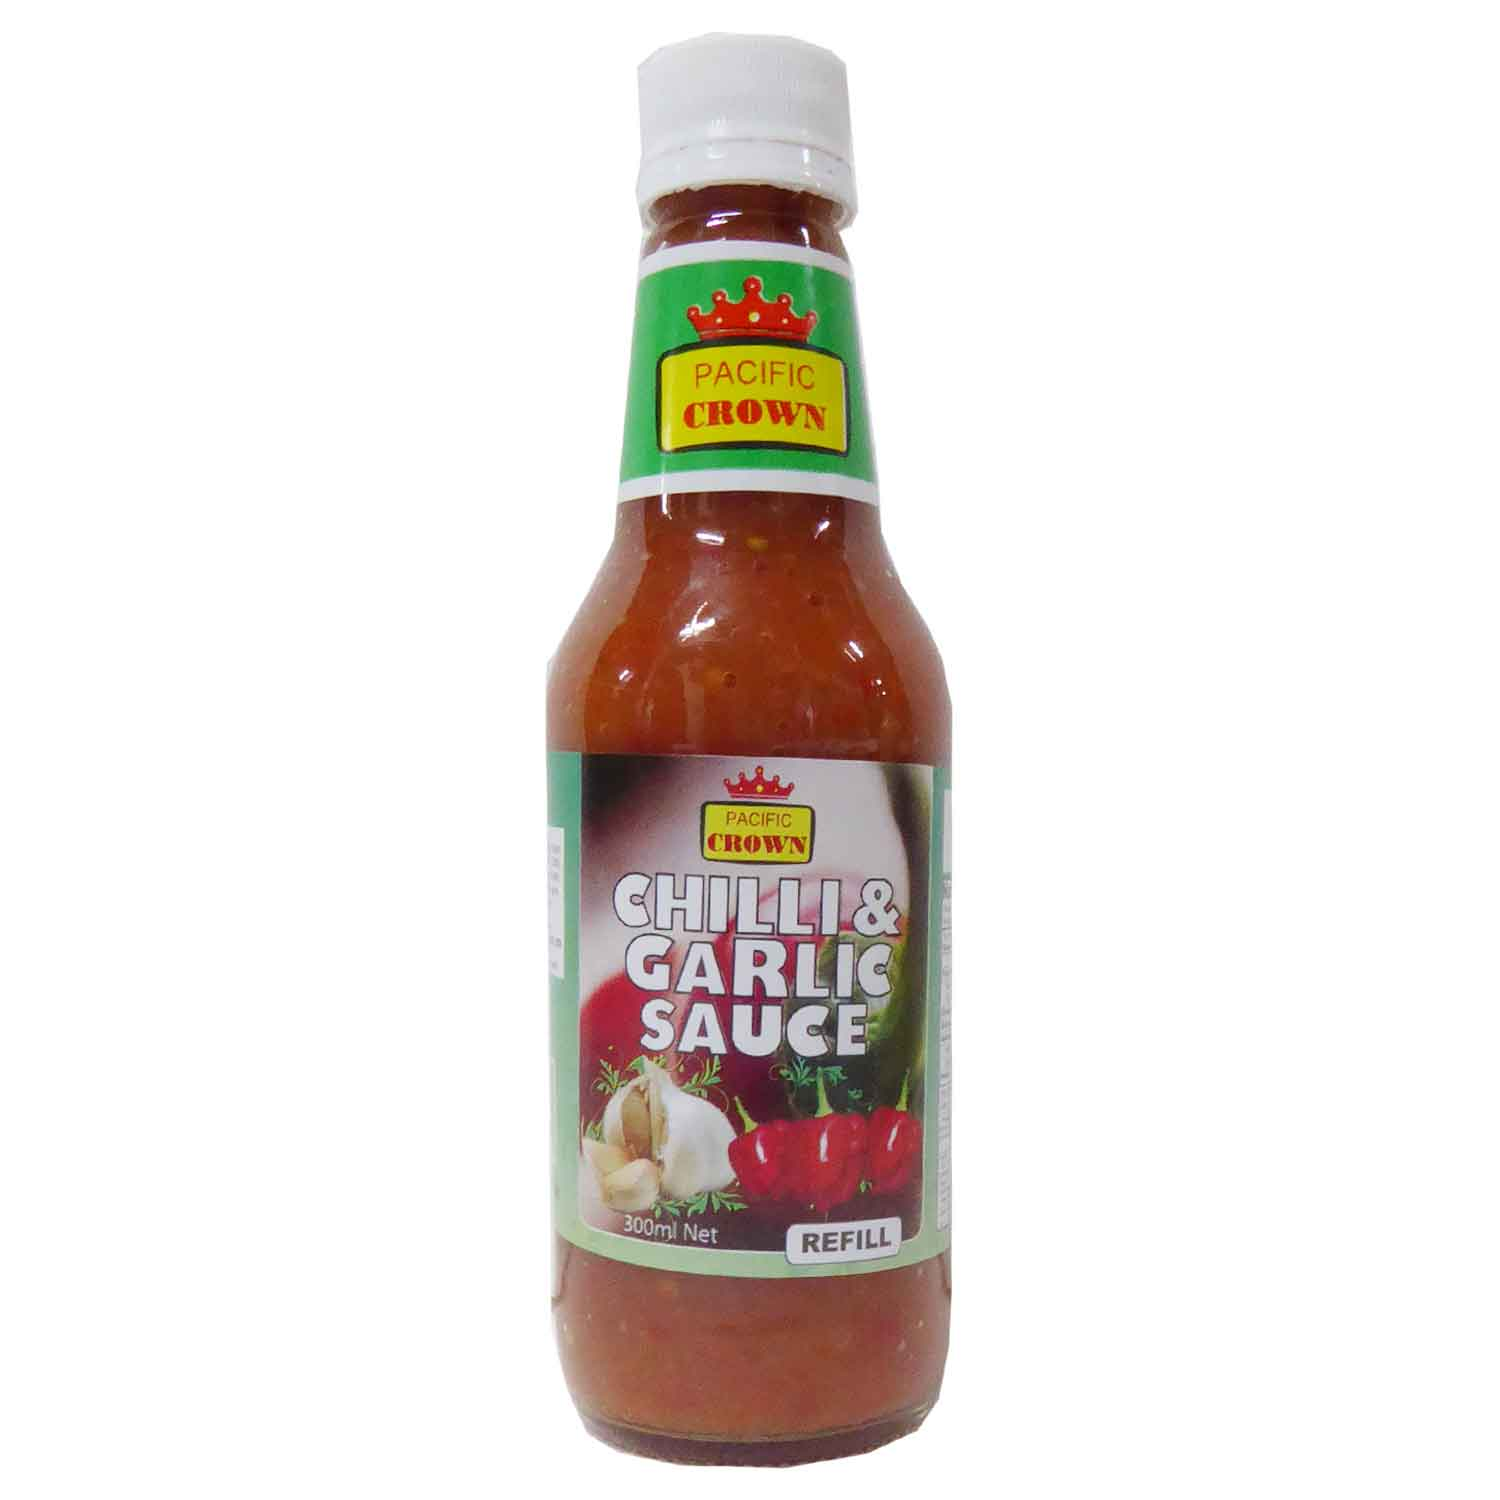 Pacific Crown Chilli & Garlic Sauce 300ml